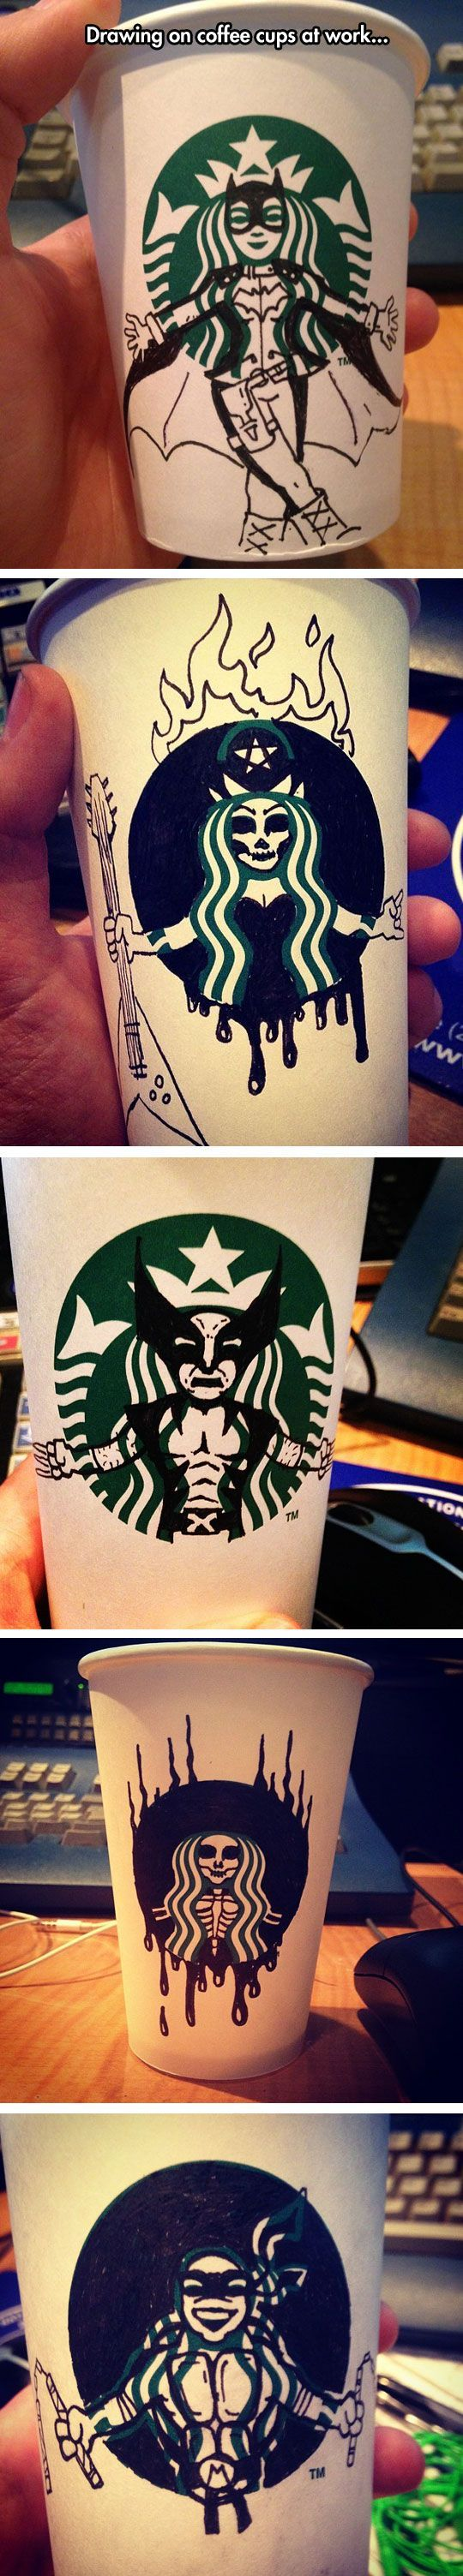 Starbucks Should Pay Him For These Designs: